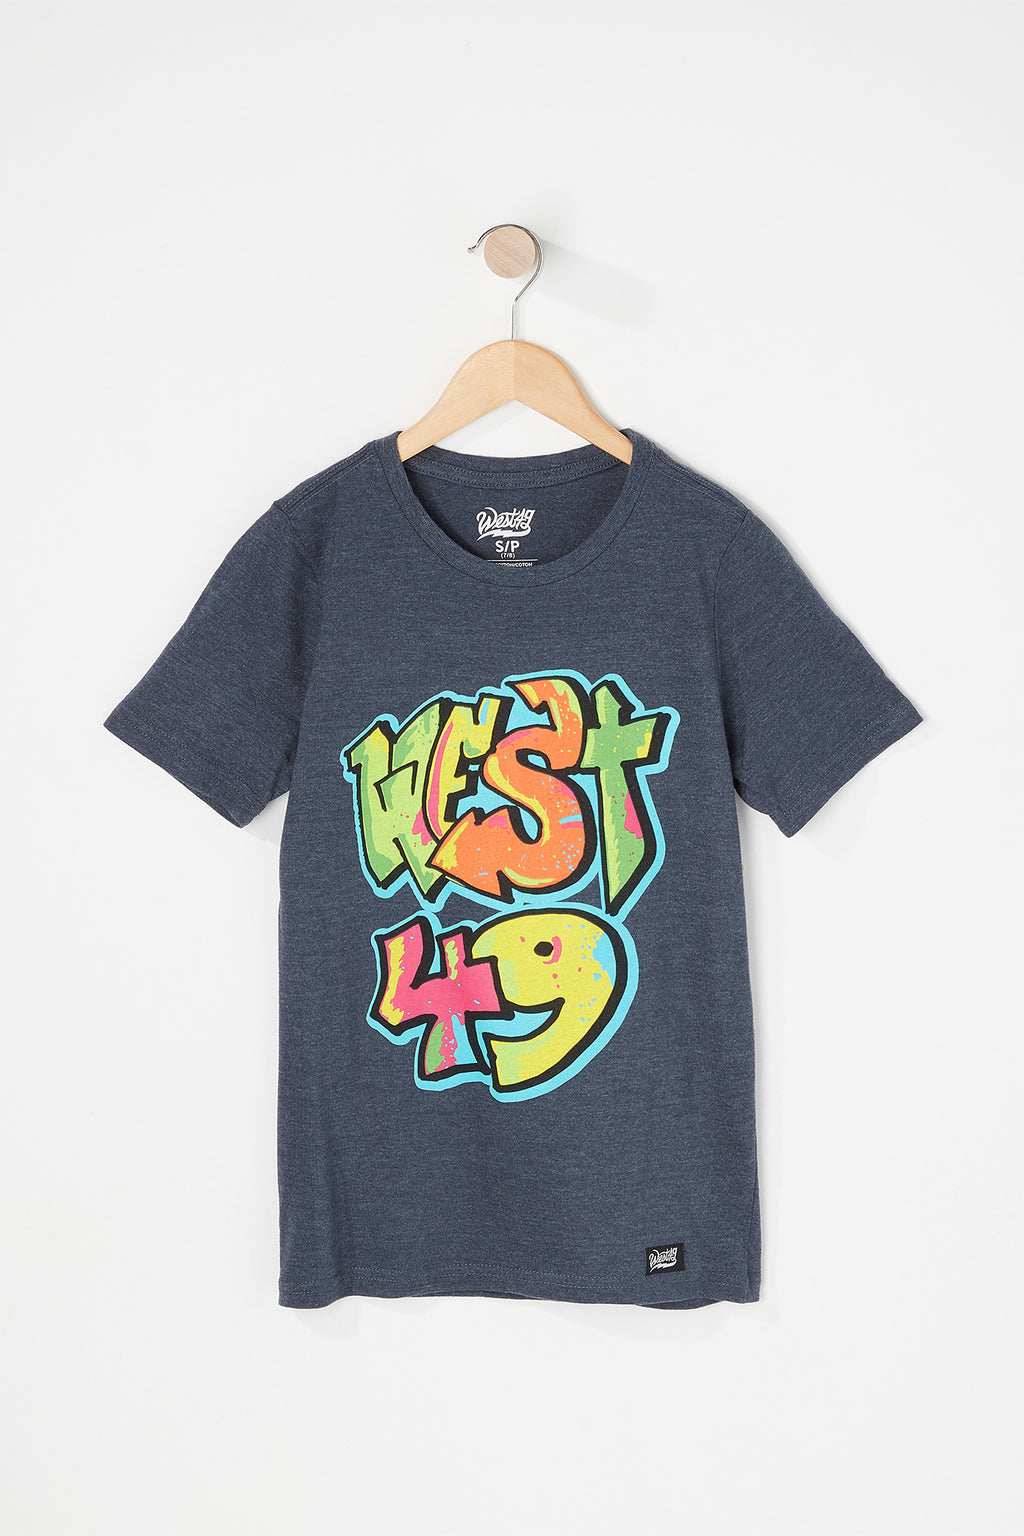 West49 Boys Graffiti Logo T-Shirt